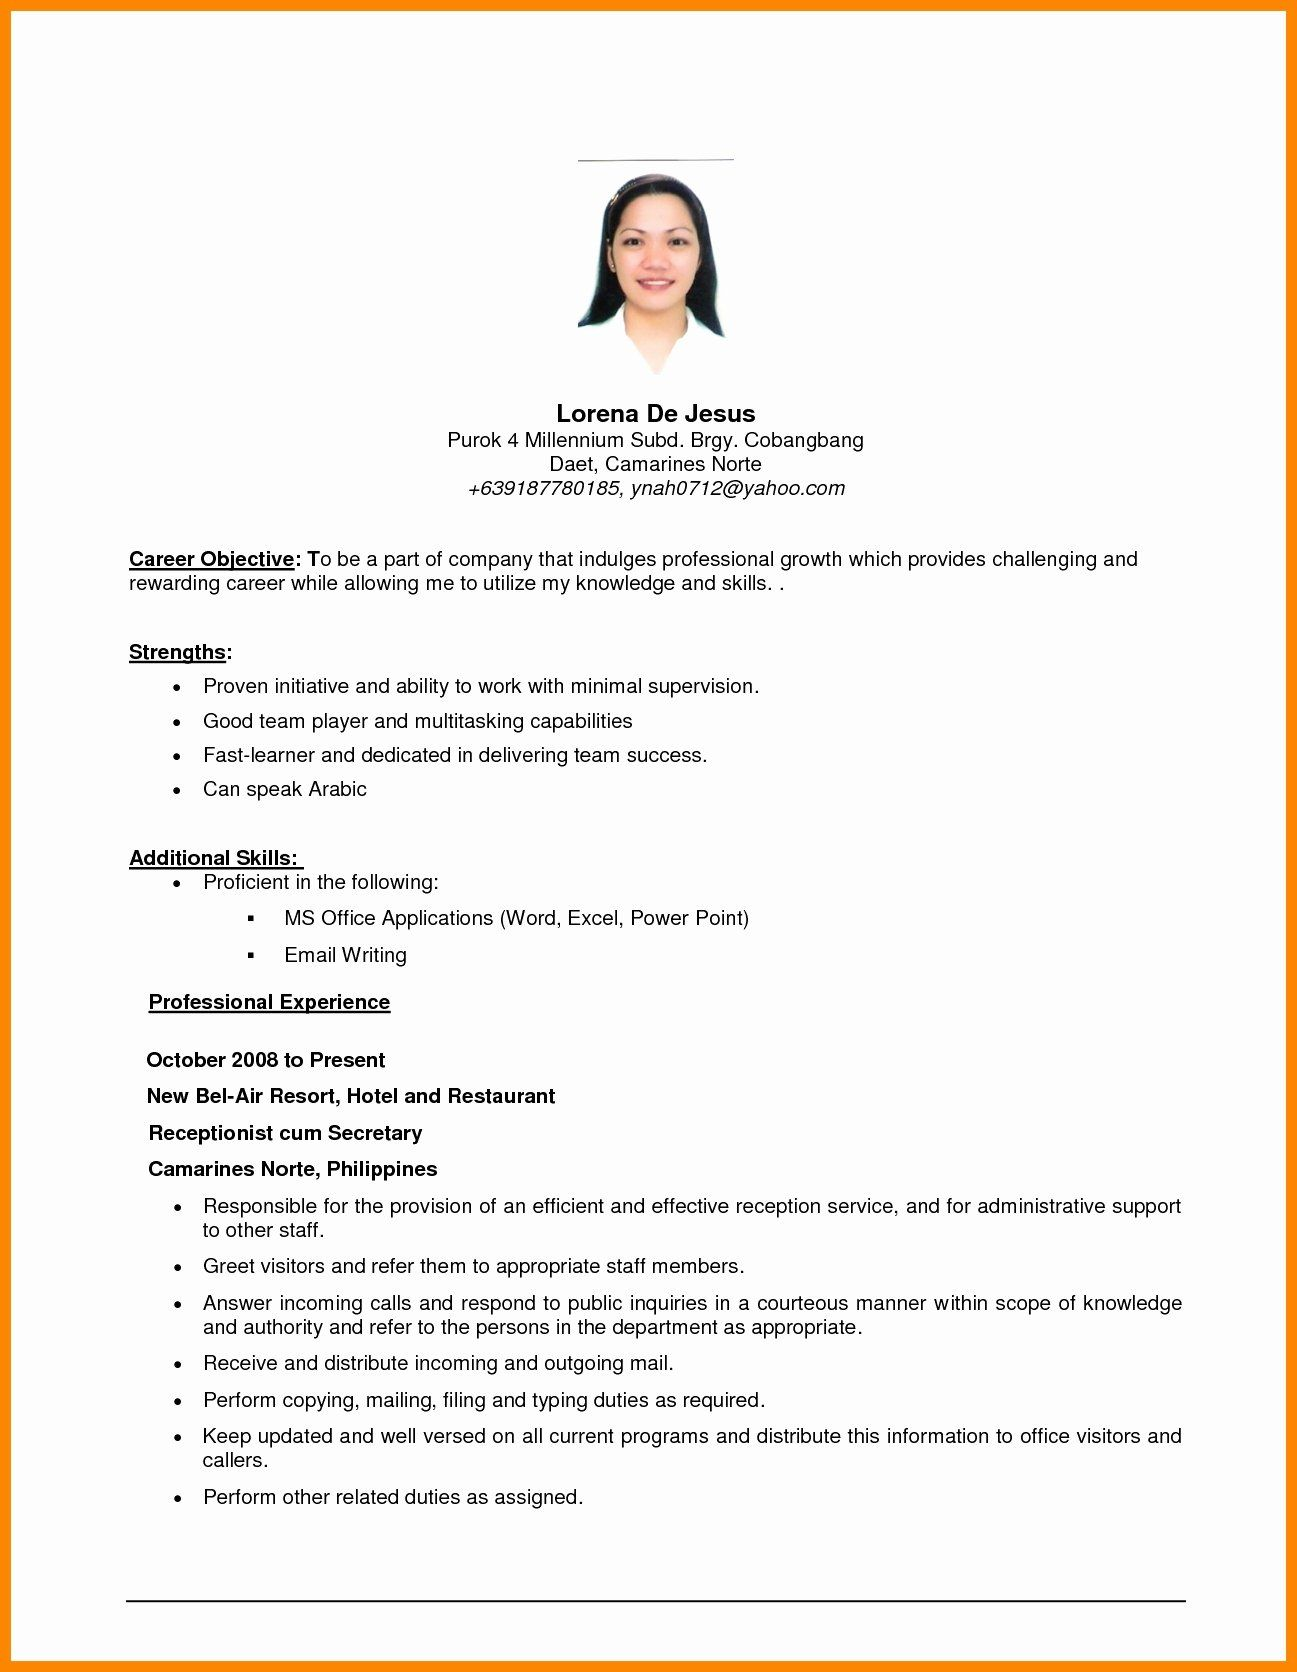 generic objective for resume inspirational general examples career objectives sample job Resume Purpose Of Objective On Resume